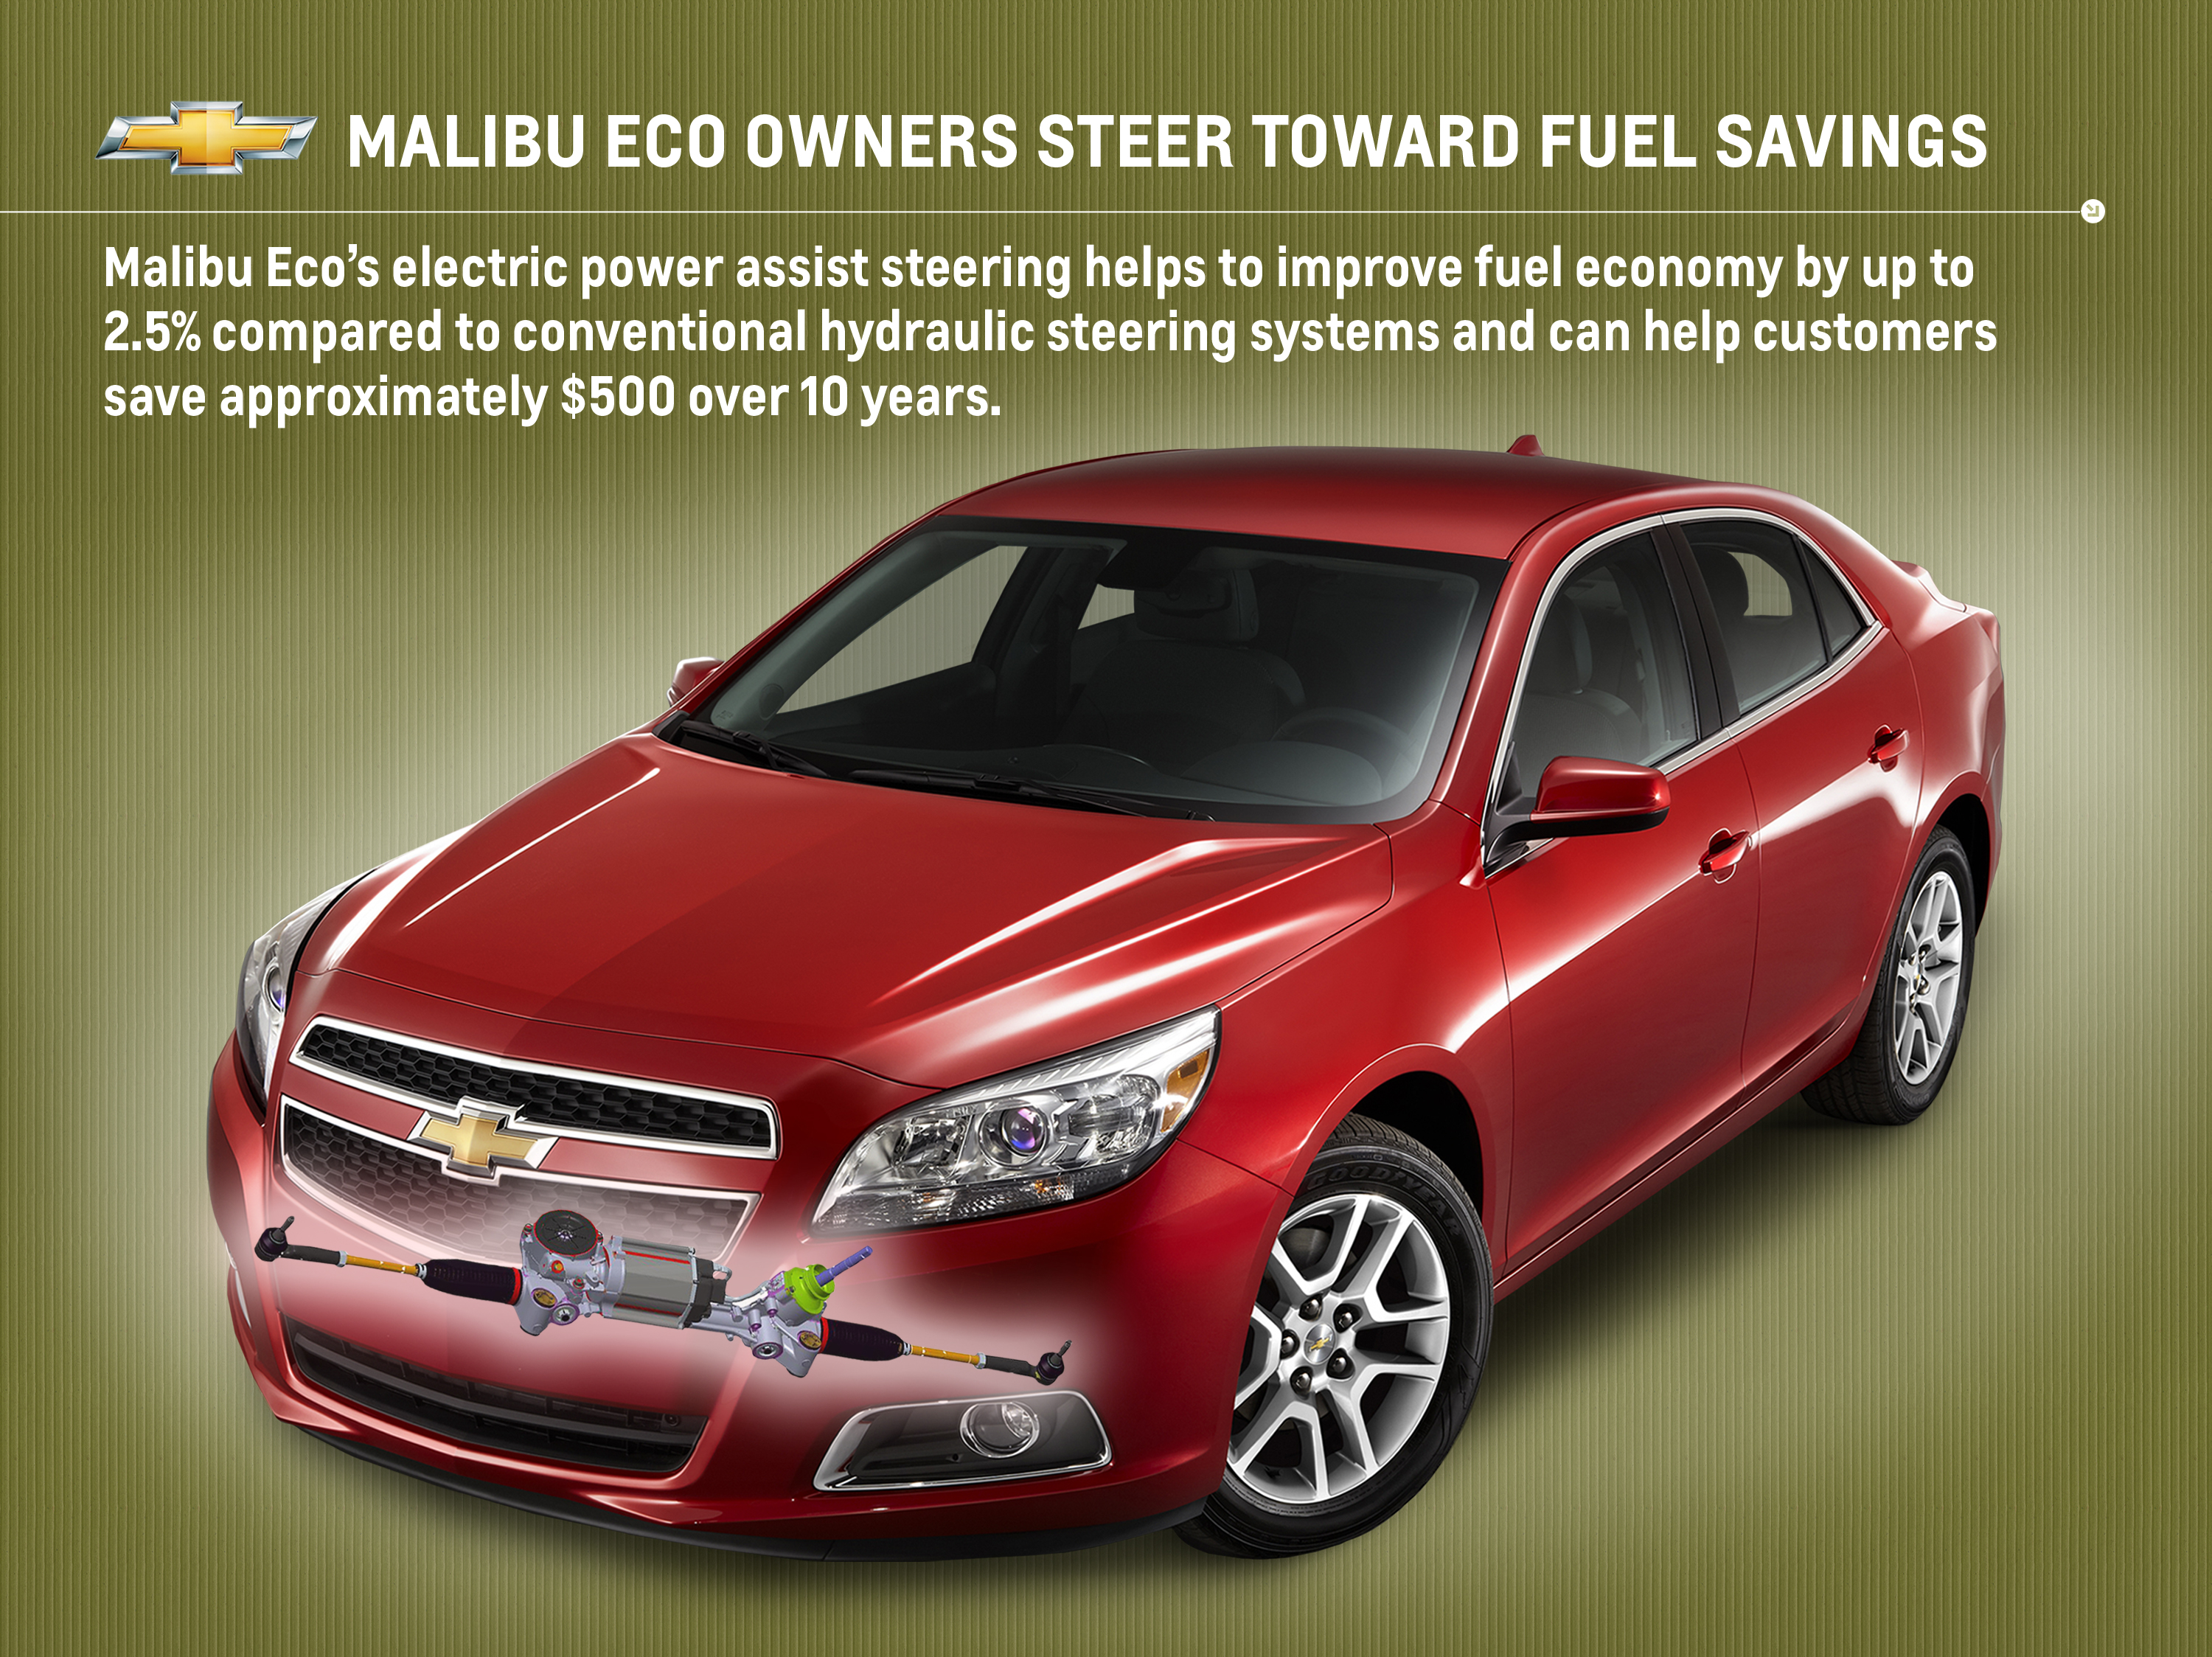 Chevrolet Malibu Eco Saves Gas With Fuel Efficient Tech